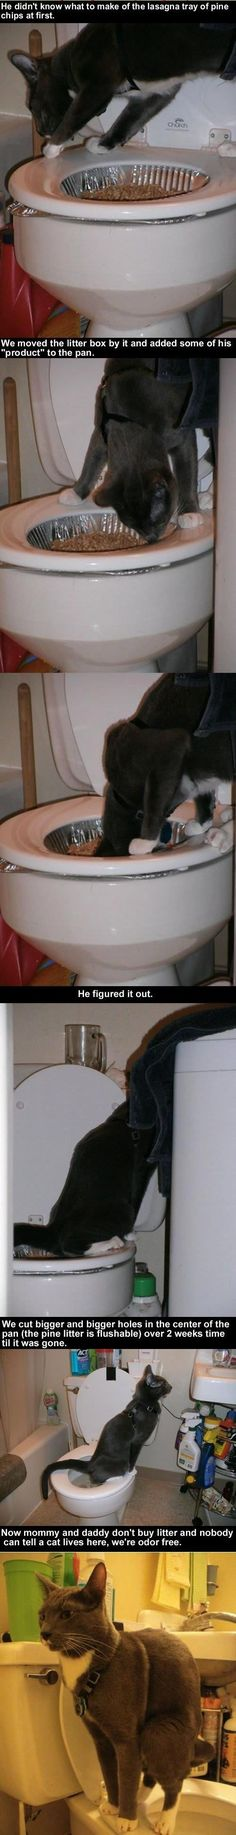 How To Teach Your Cat To Poop In The Toilet cute animals cat cats adorable animal kittens pets kitten interesting good to know Crazy Cat Lady, Crazy Cats, Bb Chat, Funny Animals, Cute Animals, Funny Pets, Gatos Cats, Litter Box, I Love Cats